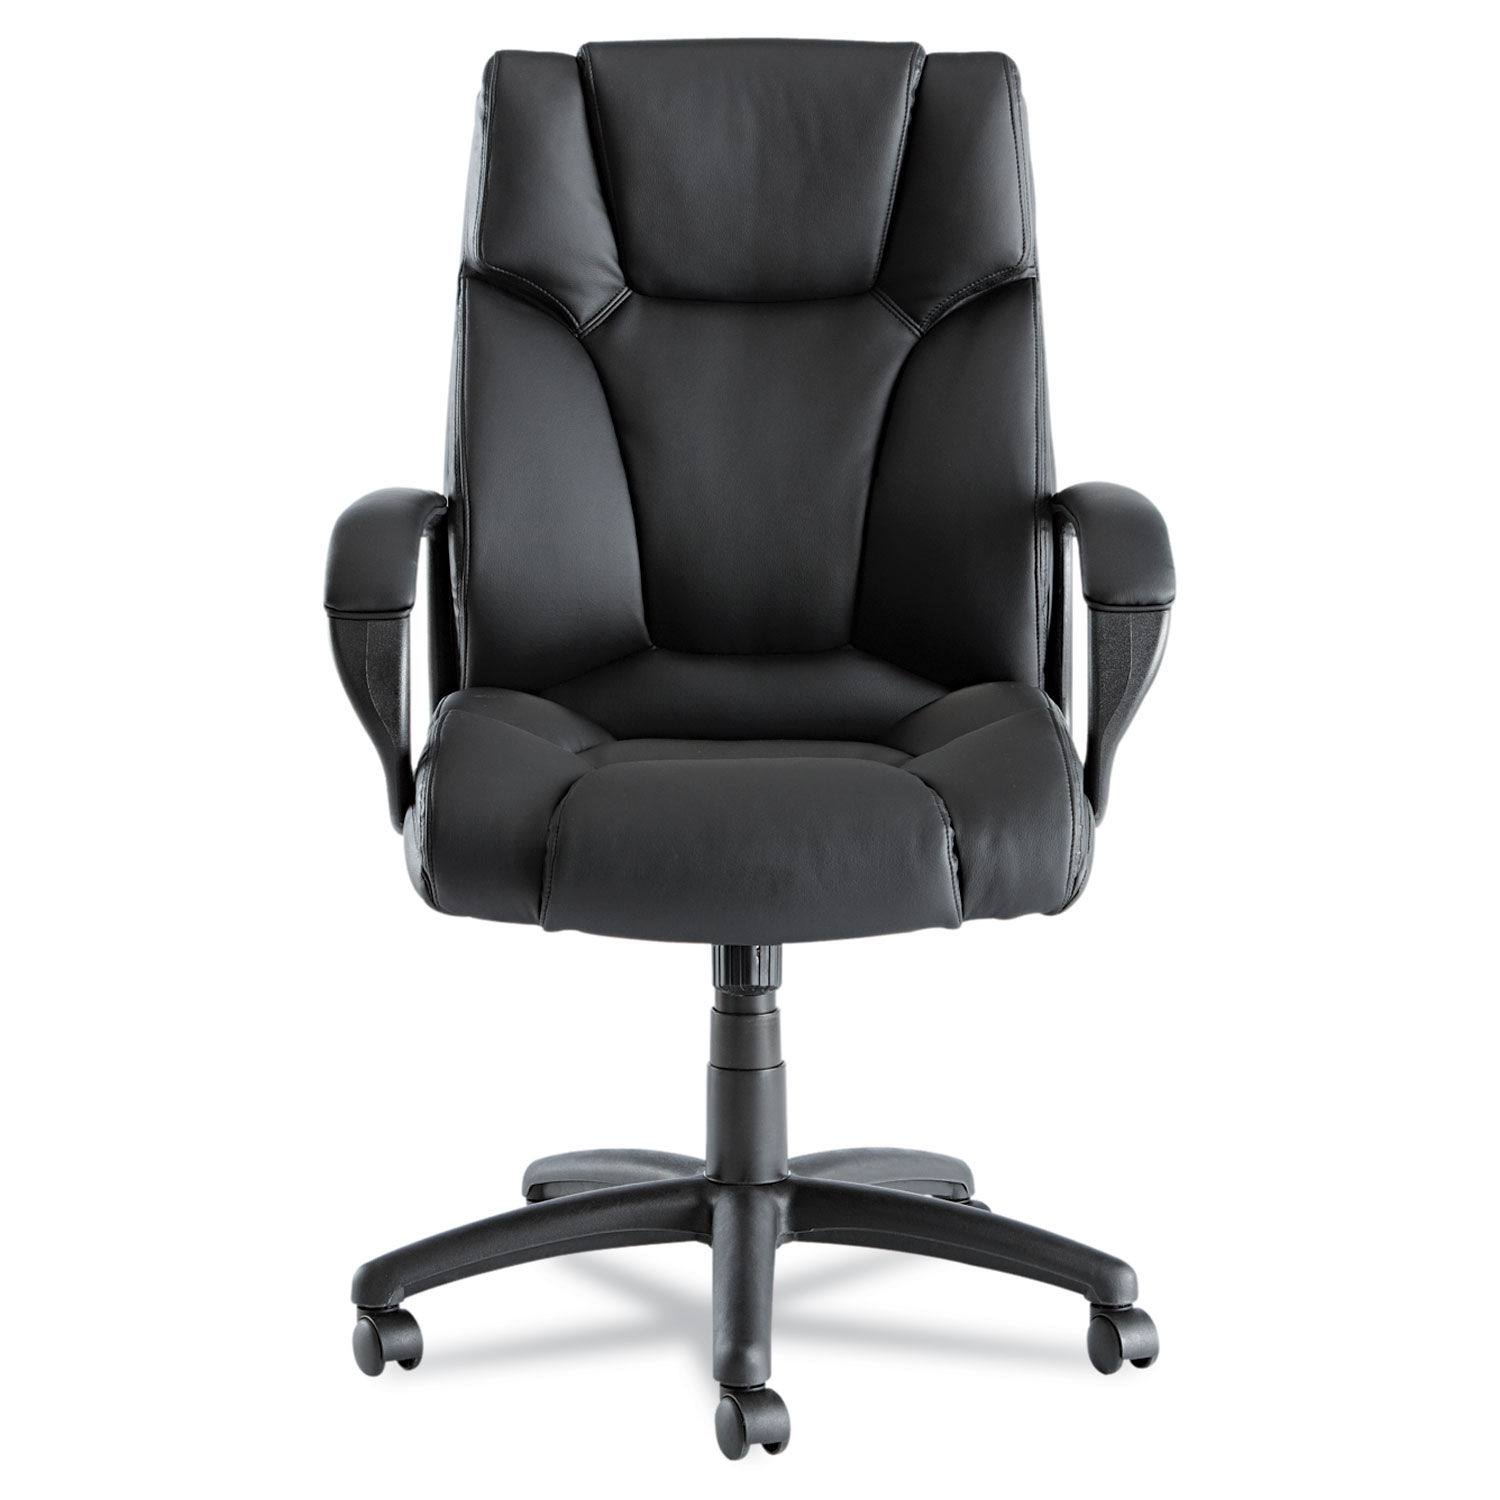 Alera Chair Alera Fraze Series High Back Swivel Tilt Chair By Alera